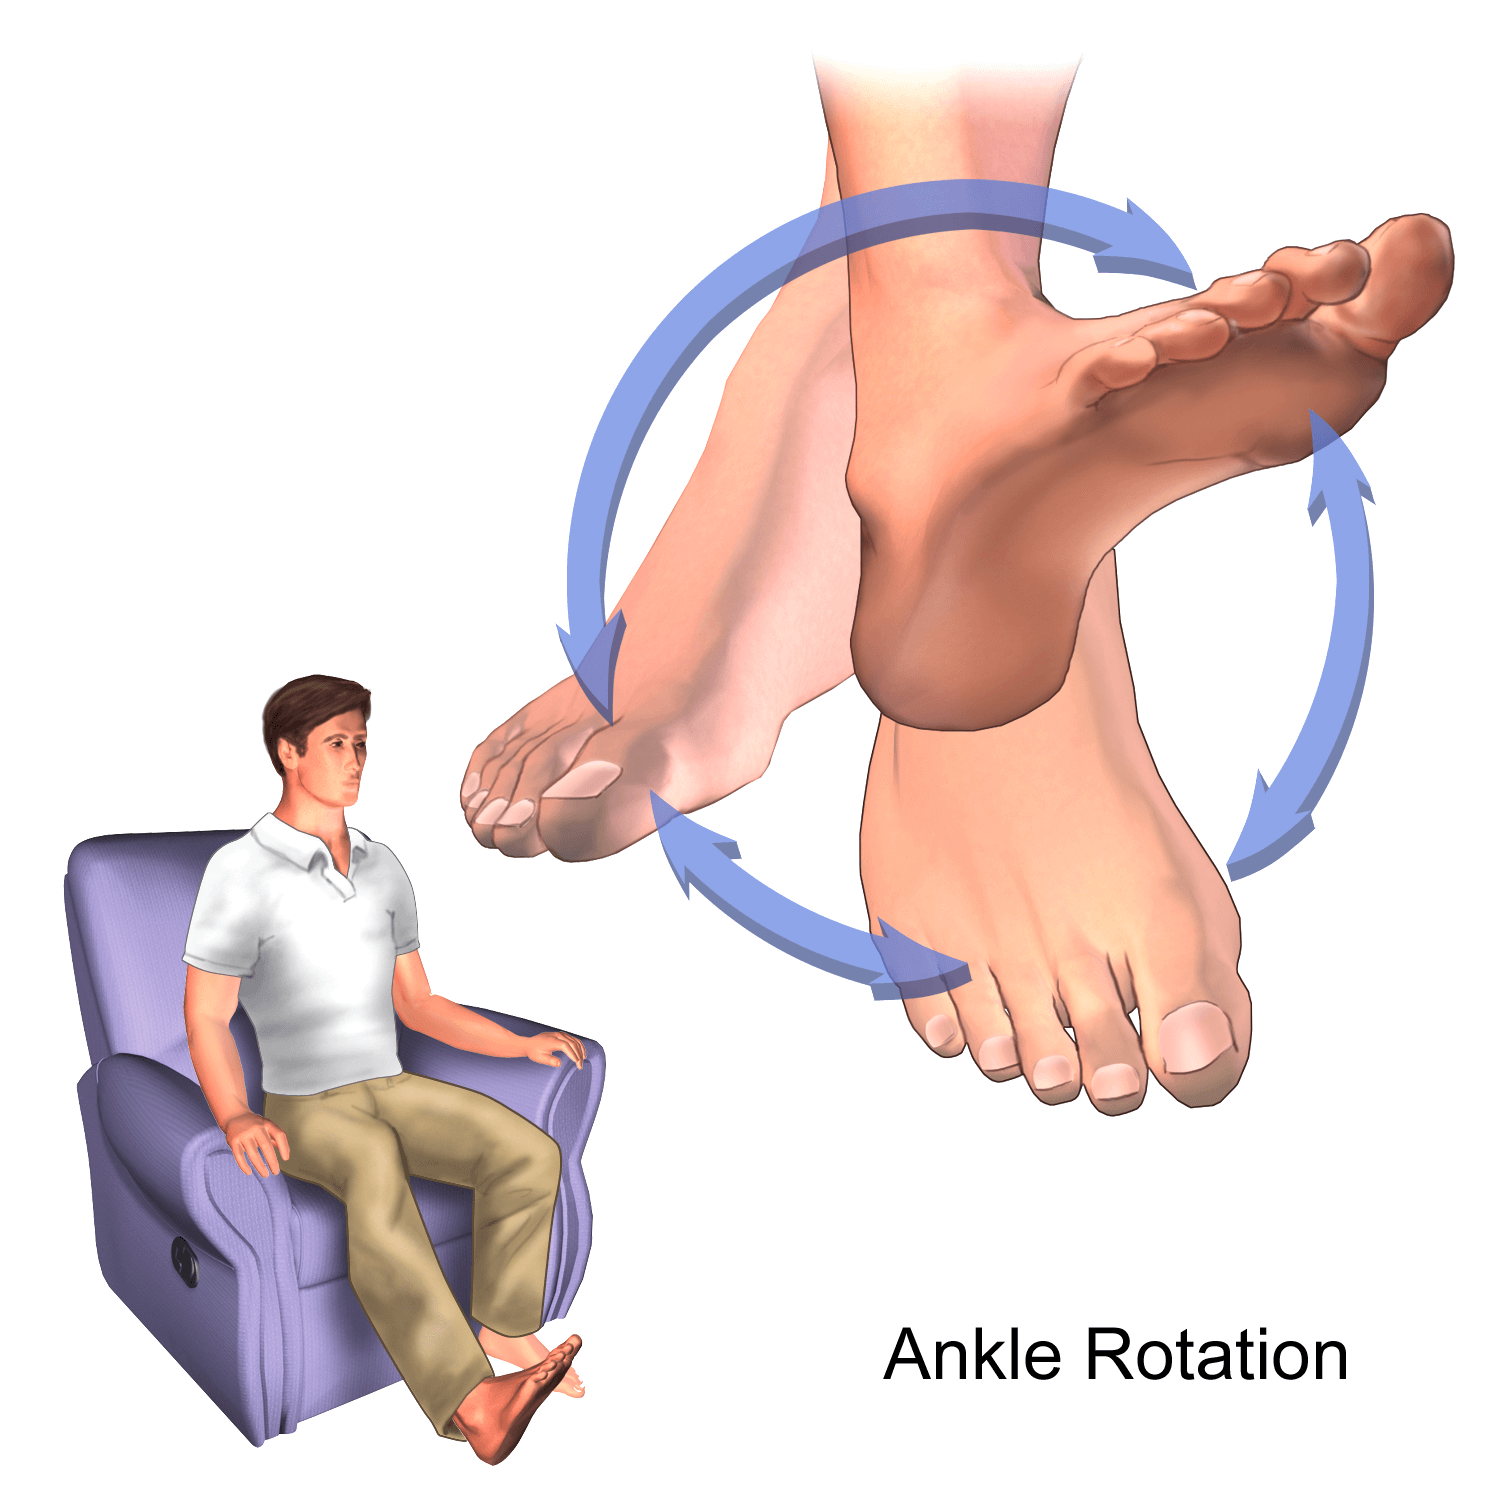 Ankle rotation exercise for neuropathy